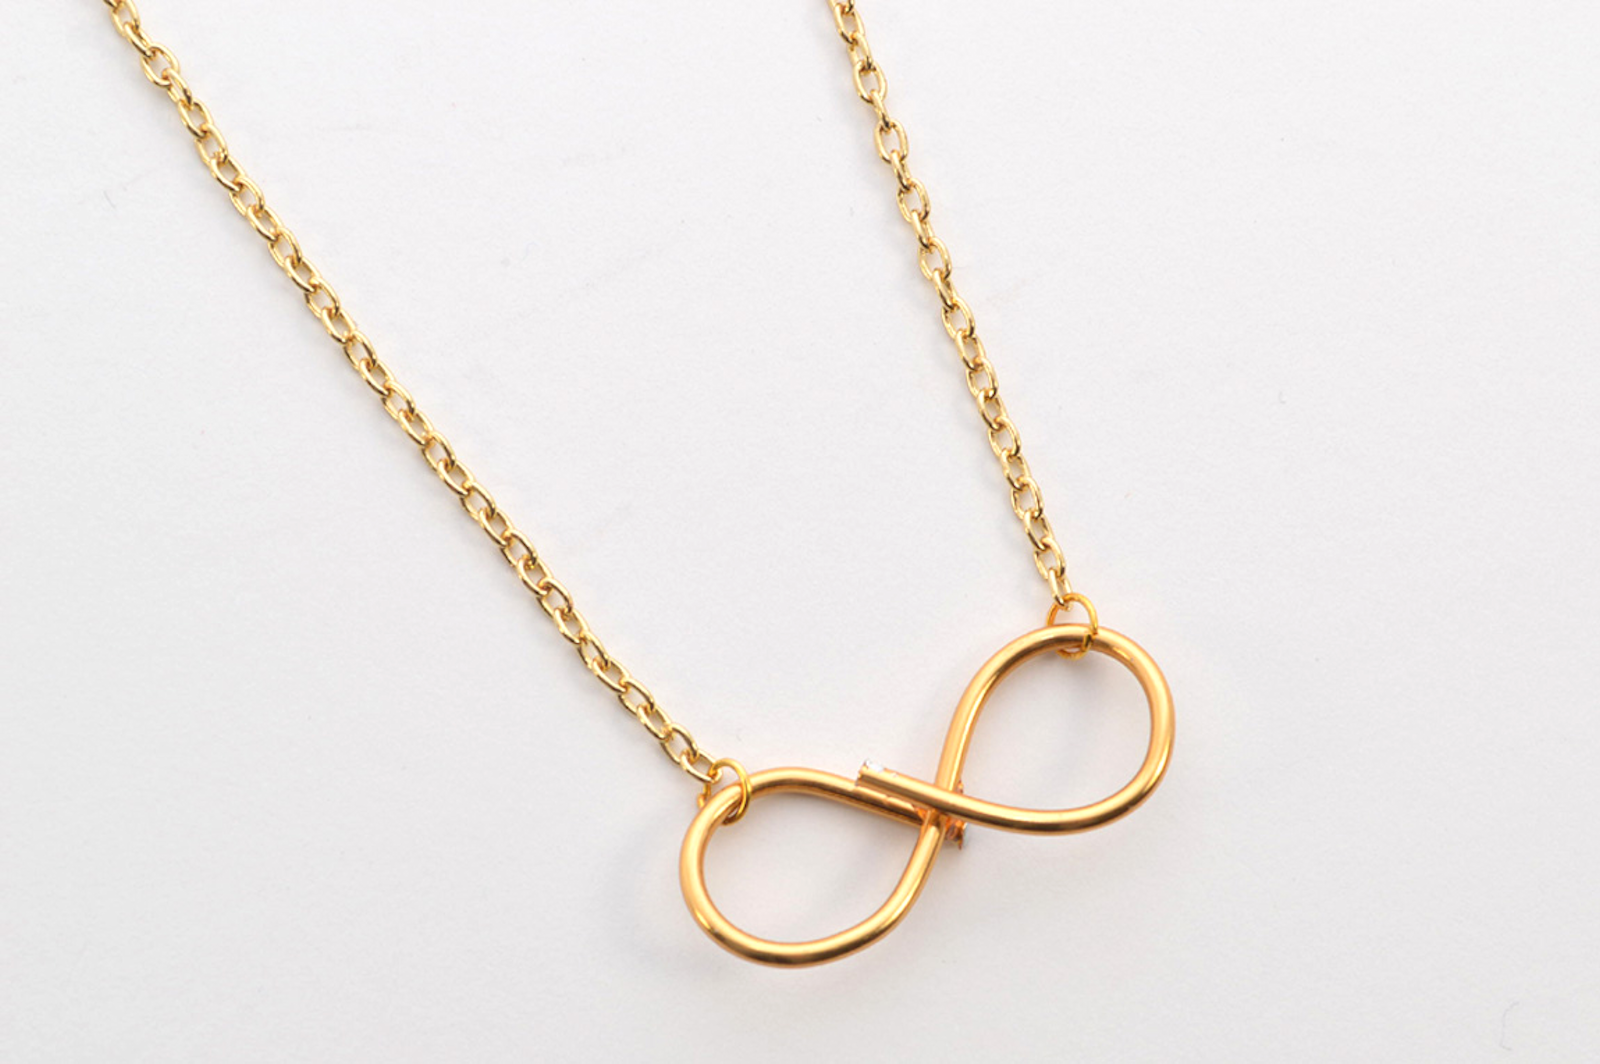 DIY Infinity Necklace